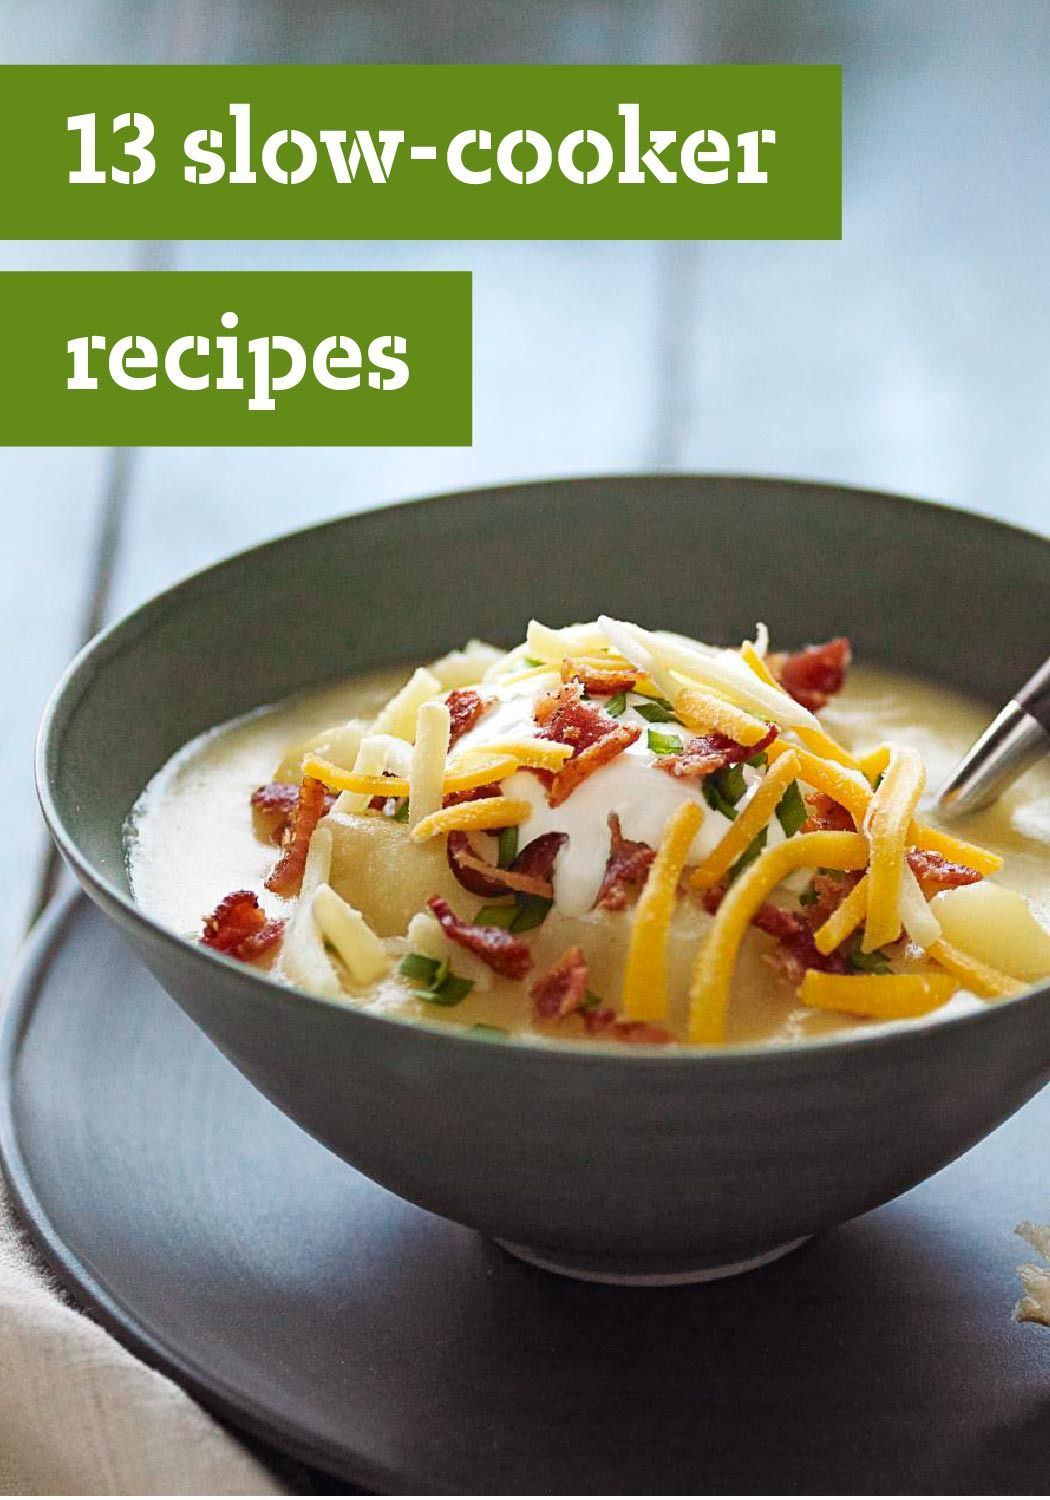 13 Slow-Cooker Recipes — When you come home to a delicious, hot meal that's ready to enjoy like this Slow-Cooker Loaded Baked Potato Soup, life is good. Some easy morning prep, and you're set for dinnertime.